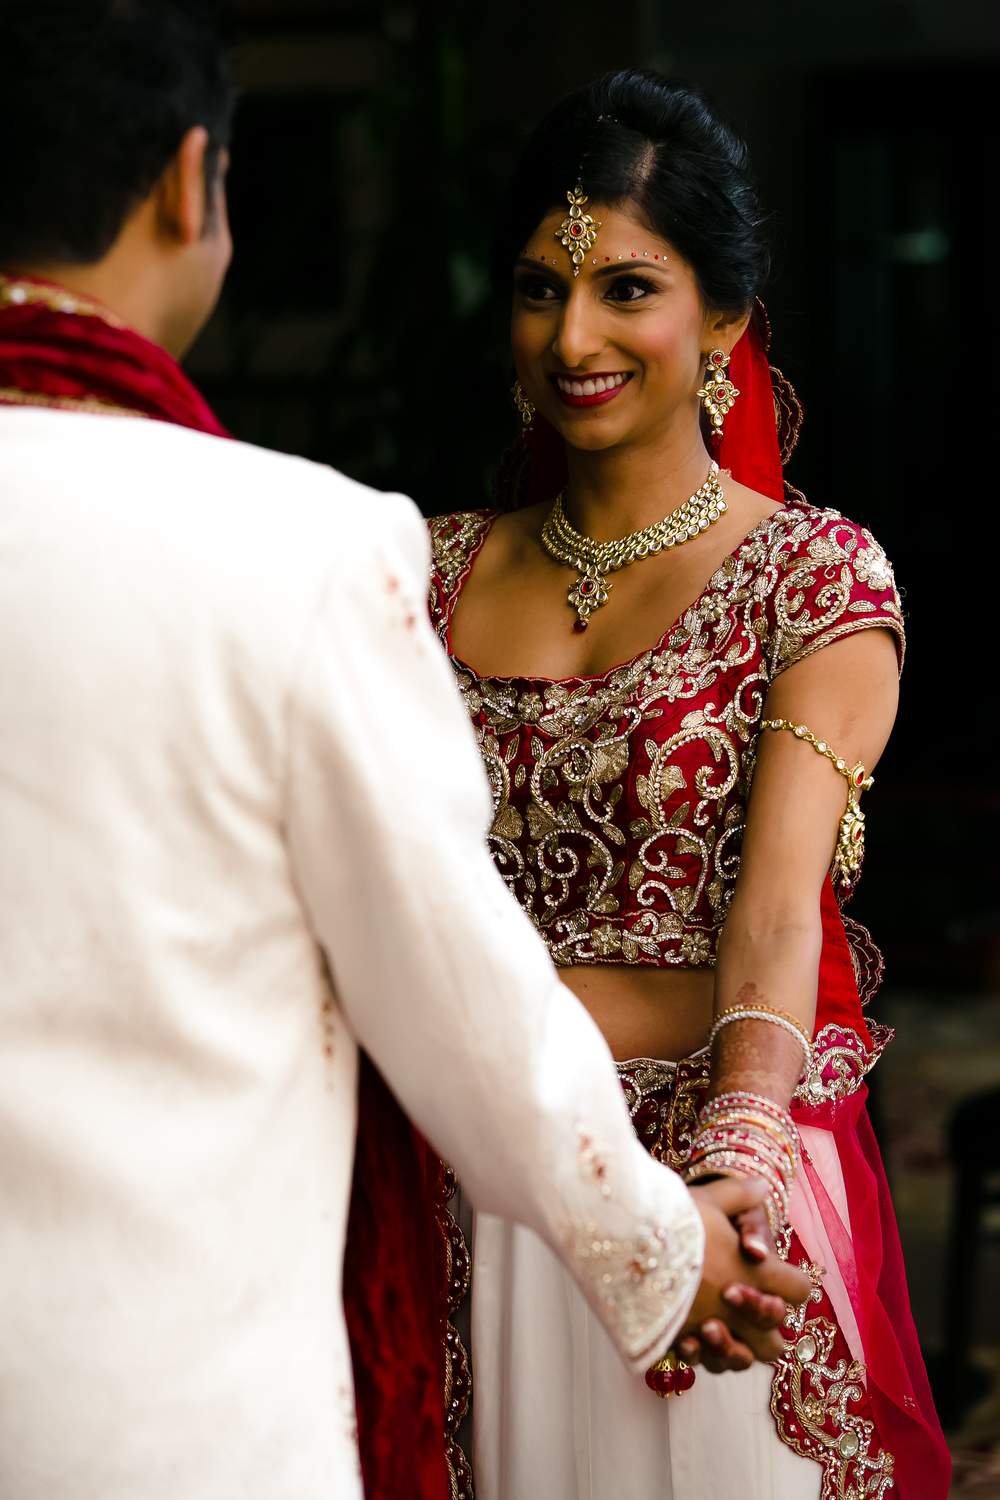 SOUTHEAST-ASIAN-INDIAN-WEDDING_013.jpg